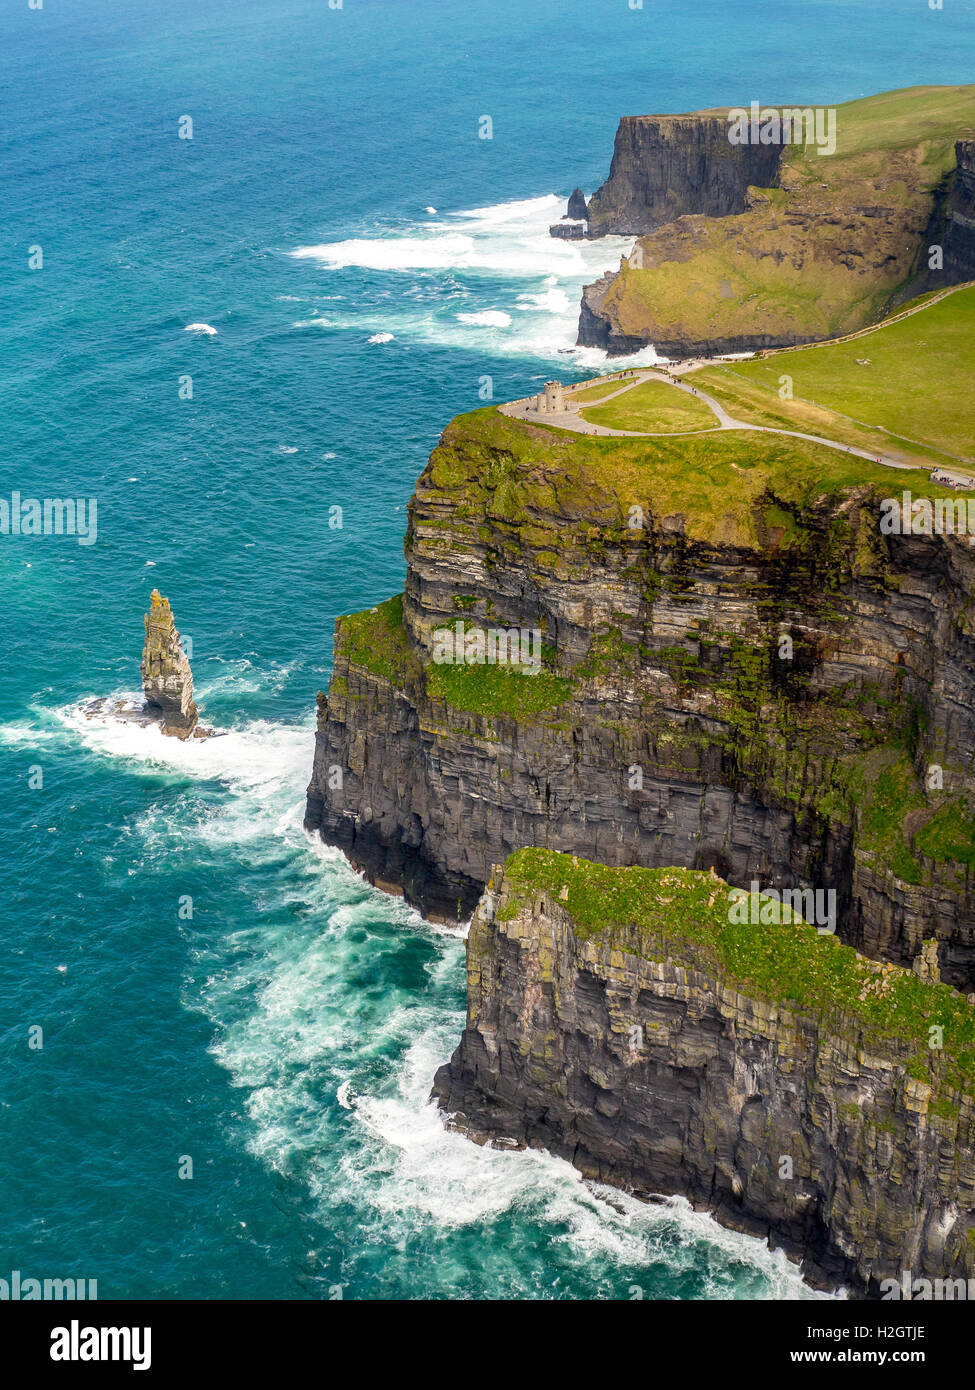 O'Brian's Tower, lookout tower on Cliffs of Moher, County Clare, Ireland Stock Photo